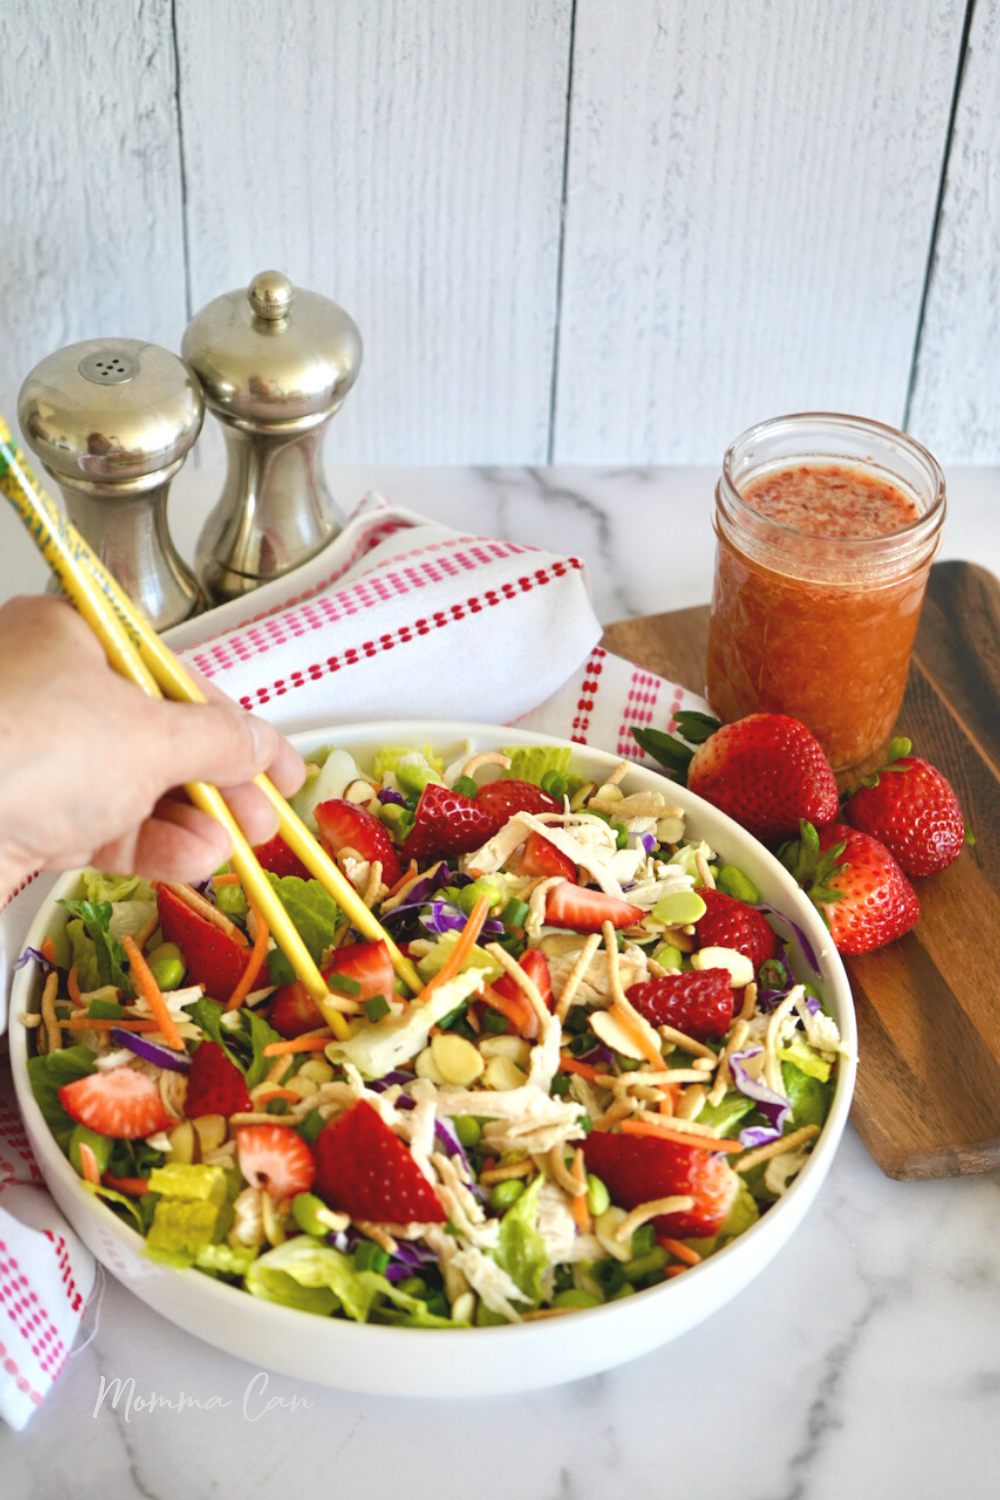 Strawberry Salad Recipe with Chicken and Almonds